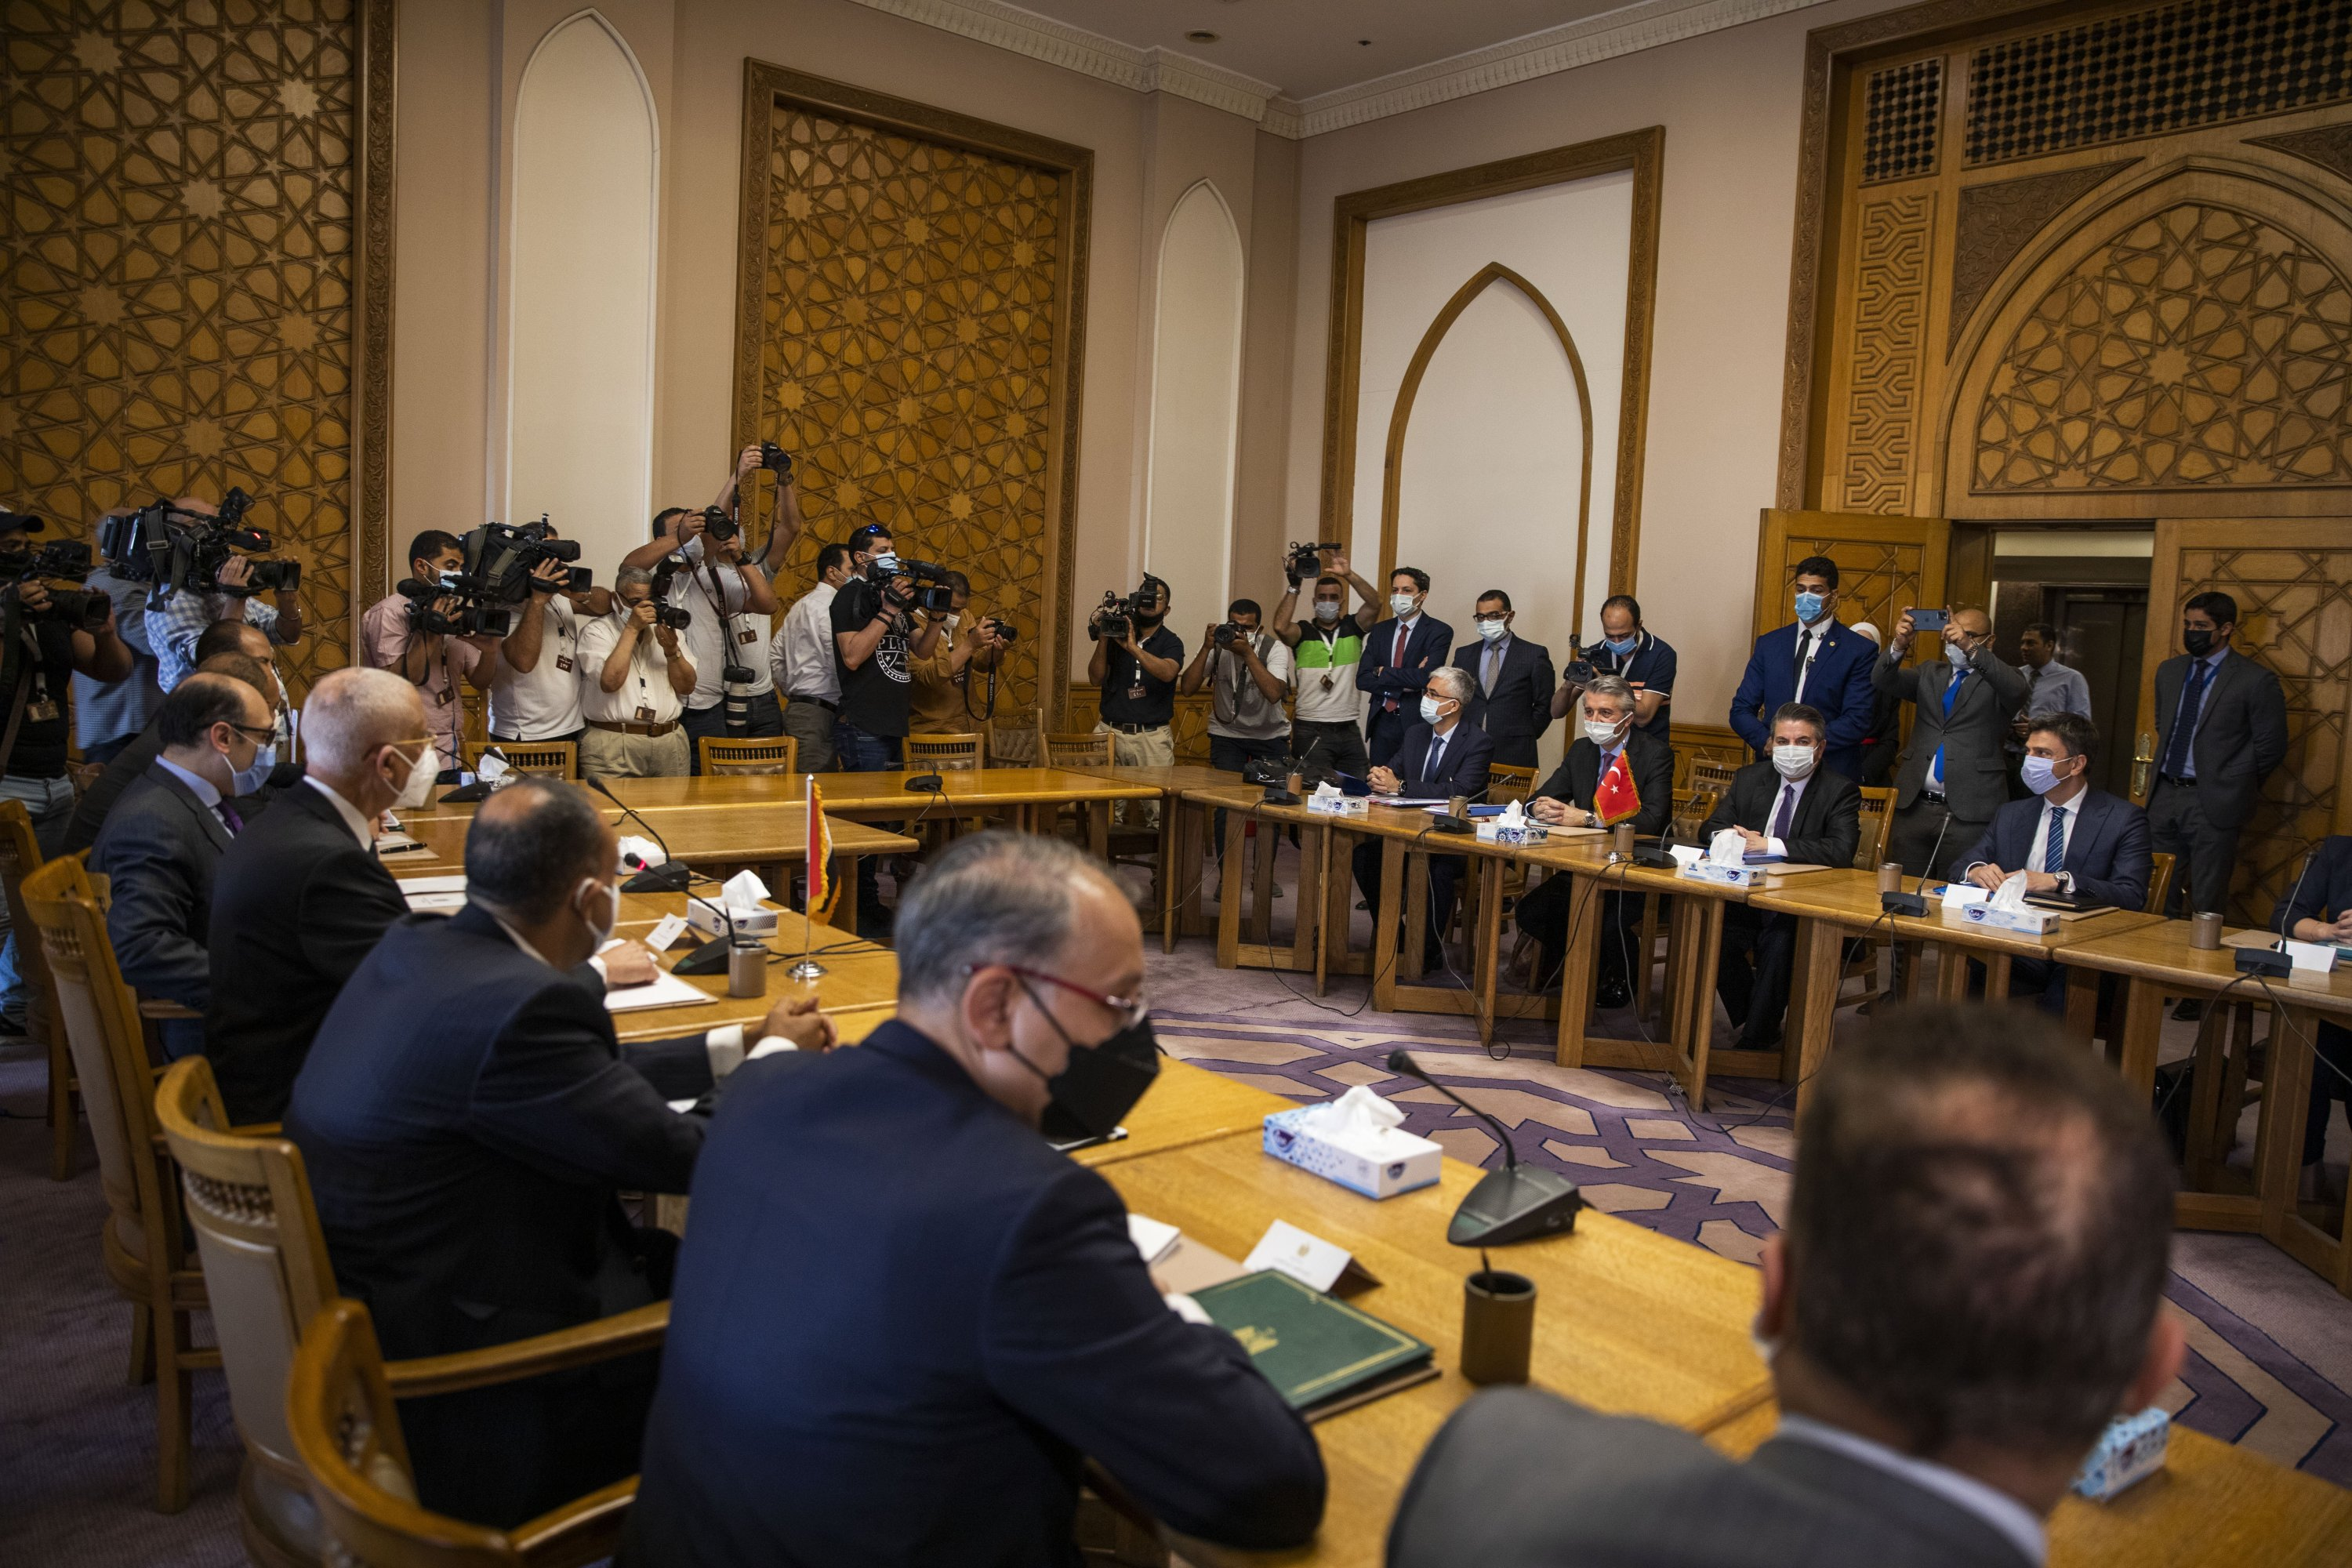 Turkish Foreign Ministry Deputy Sedat Onal, seated (2-R), meets with Hamdi Sanad Loza, Egyptian deputy foreign minister, (4-L), and their delegations, at the Foreign Ministry in Cairo, Egypt, May 5, 2021. (AP Photo)